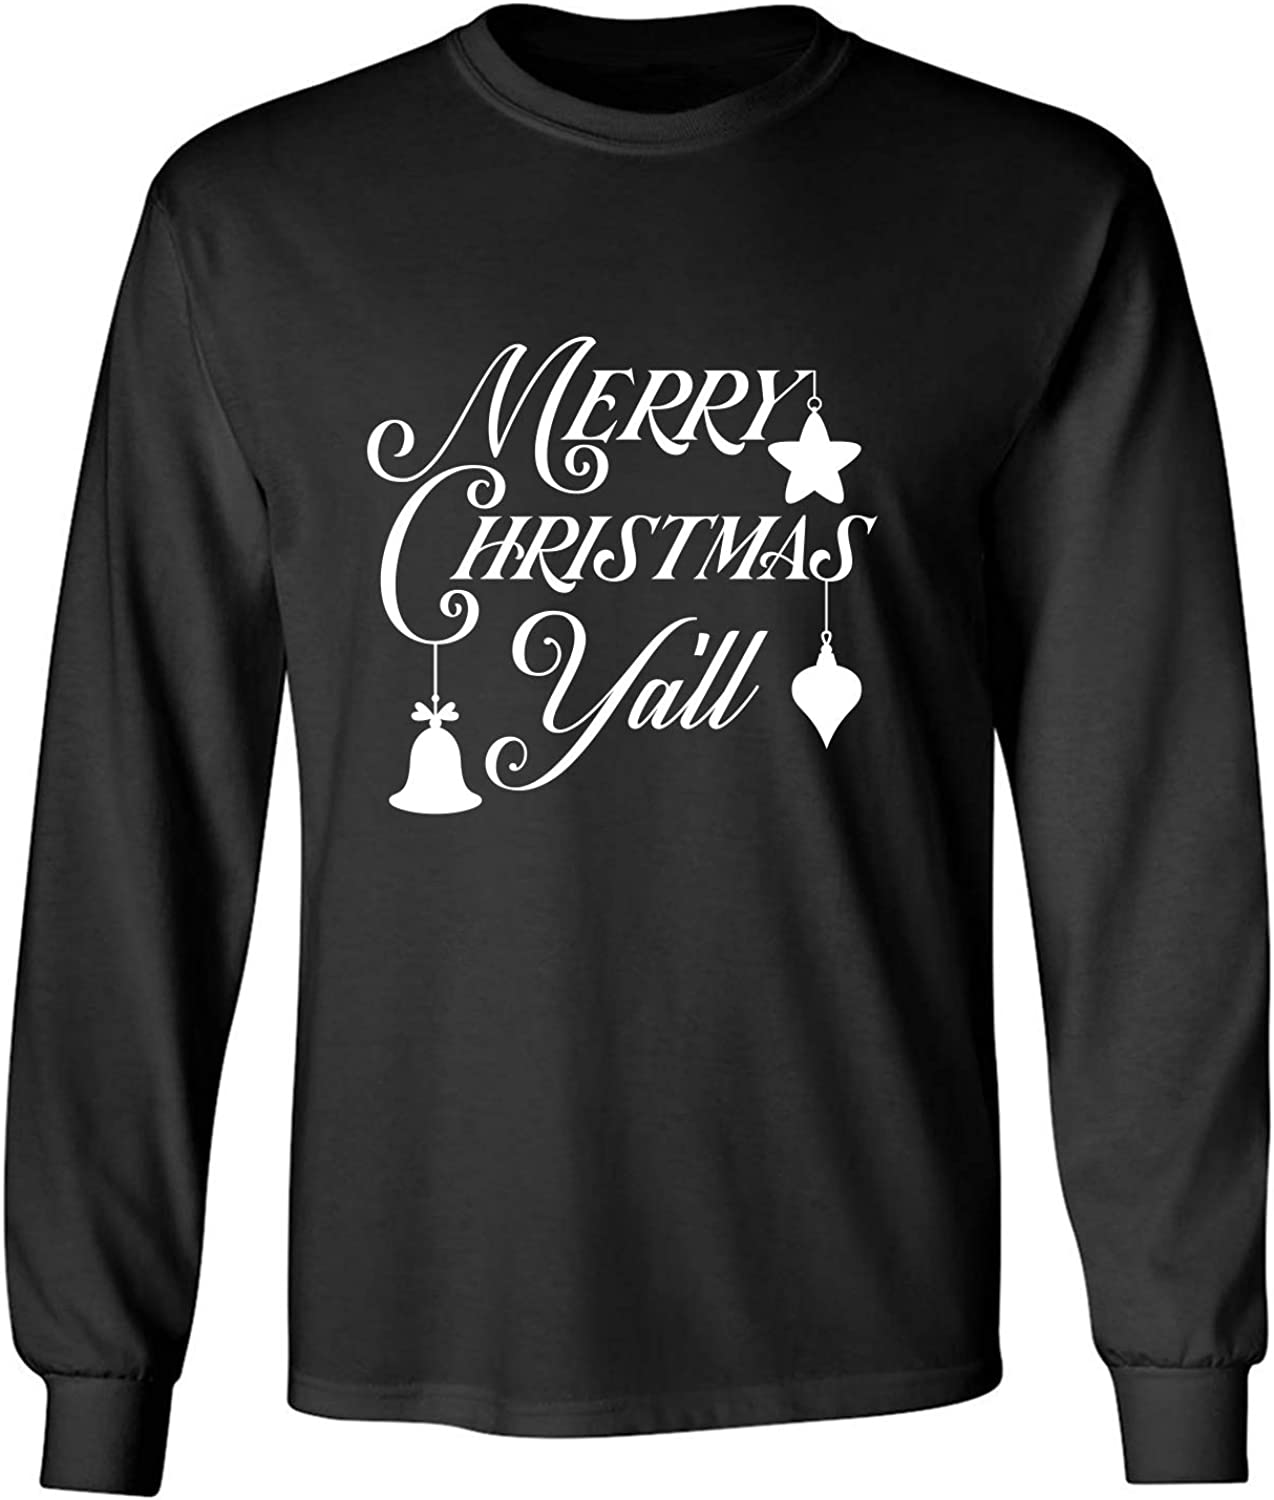 Merry Christmas Y'all Adult Long Sleeve T-Shirt in Black - XXXXX-Large